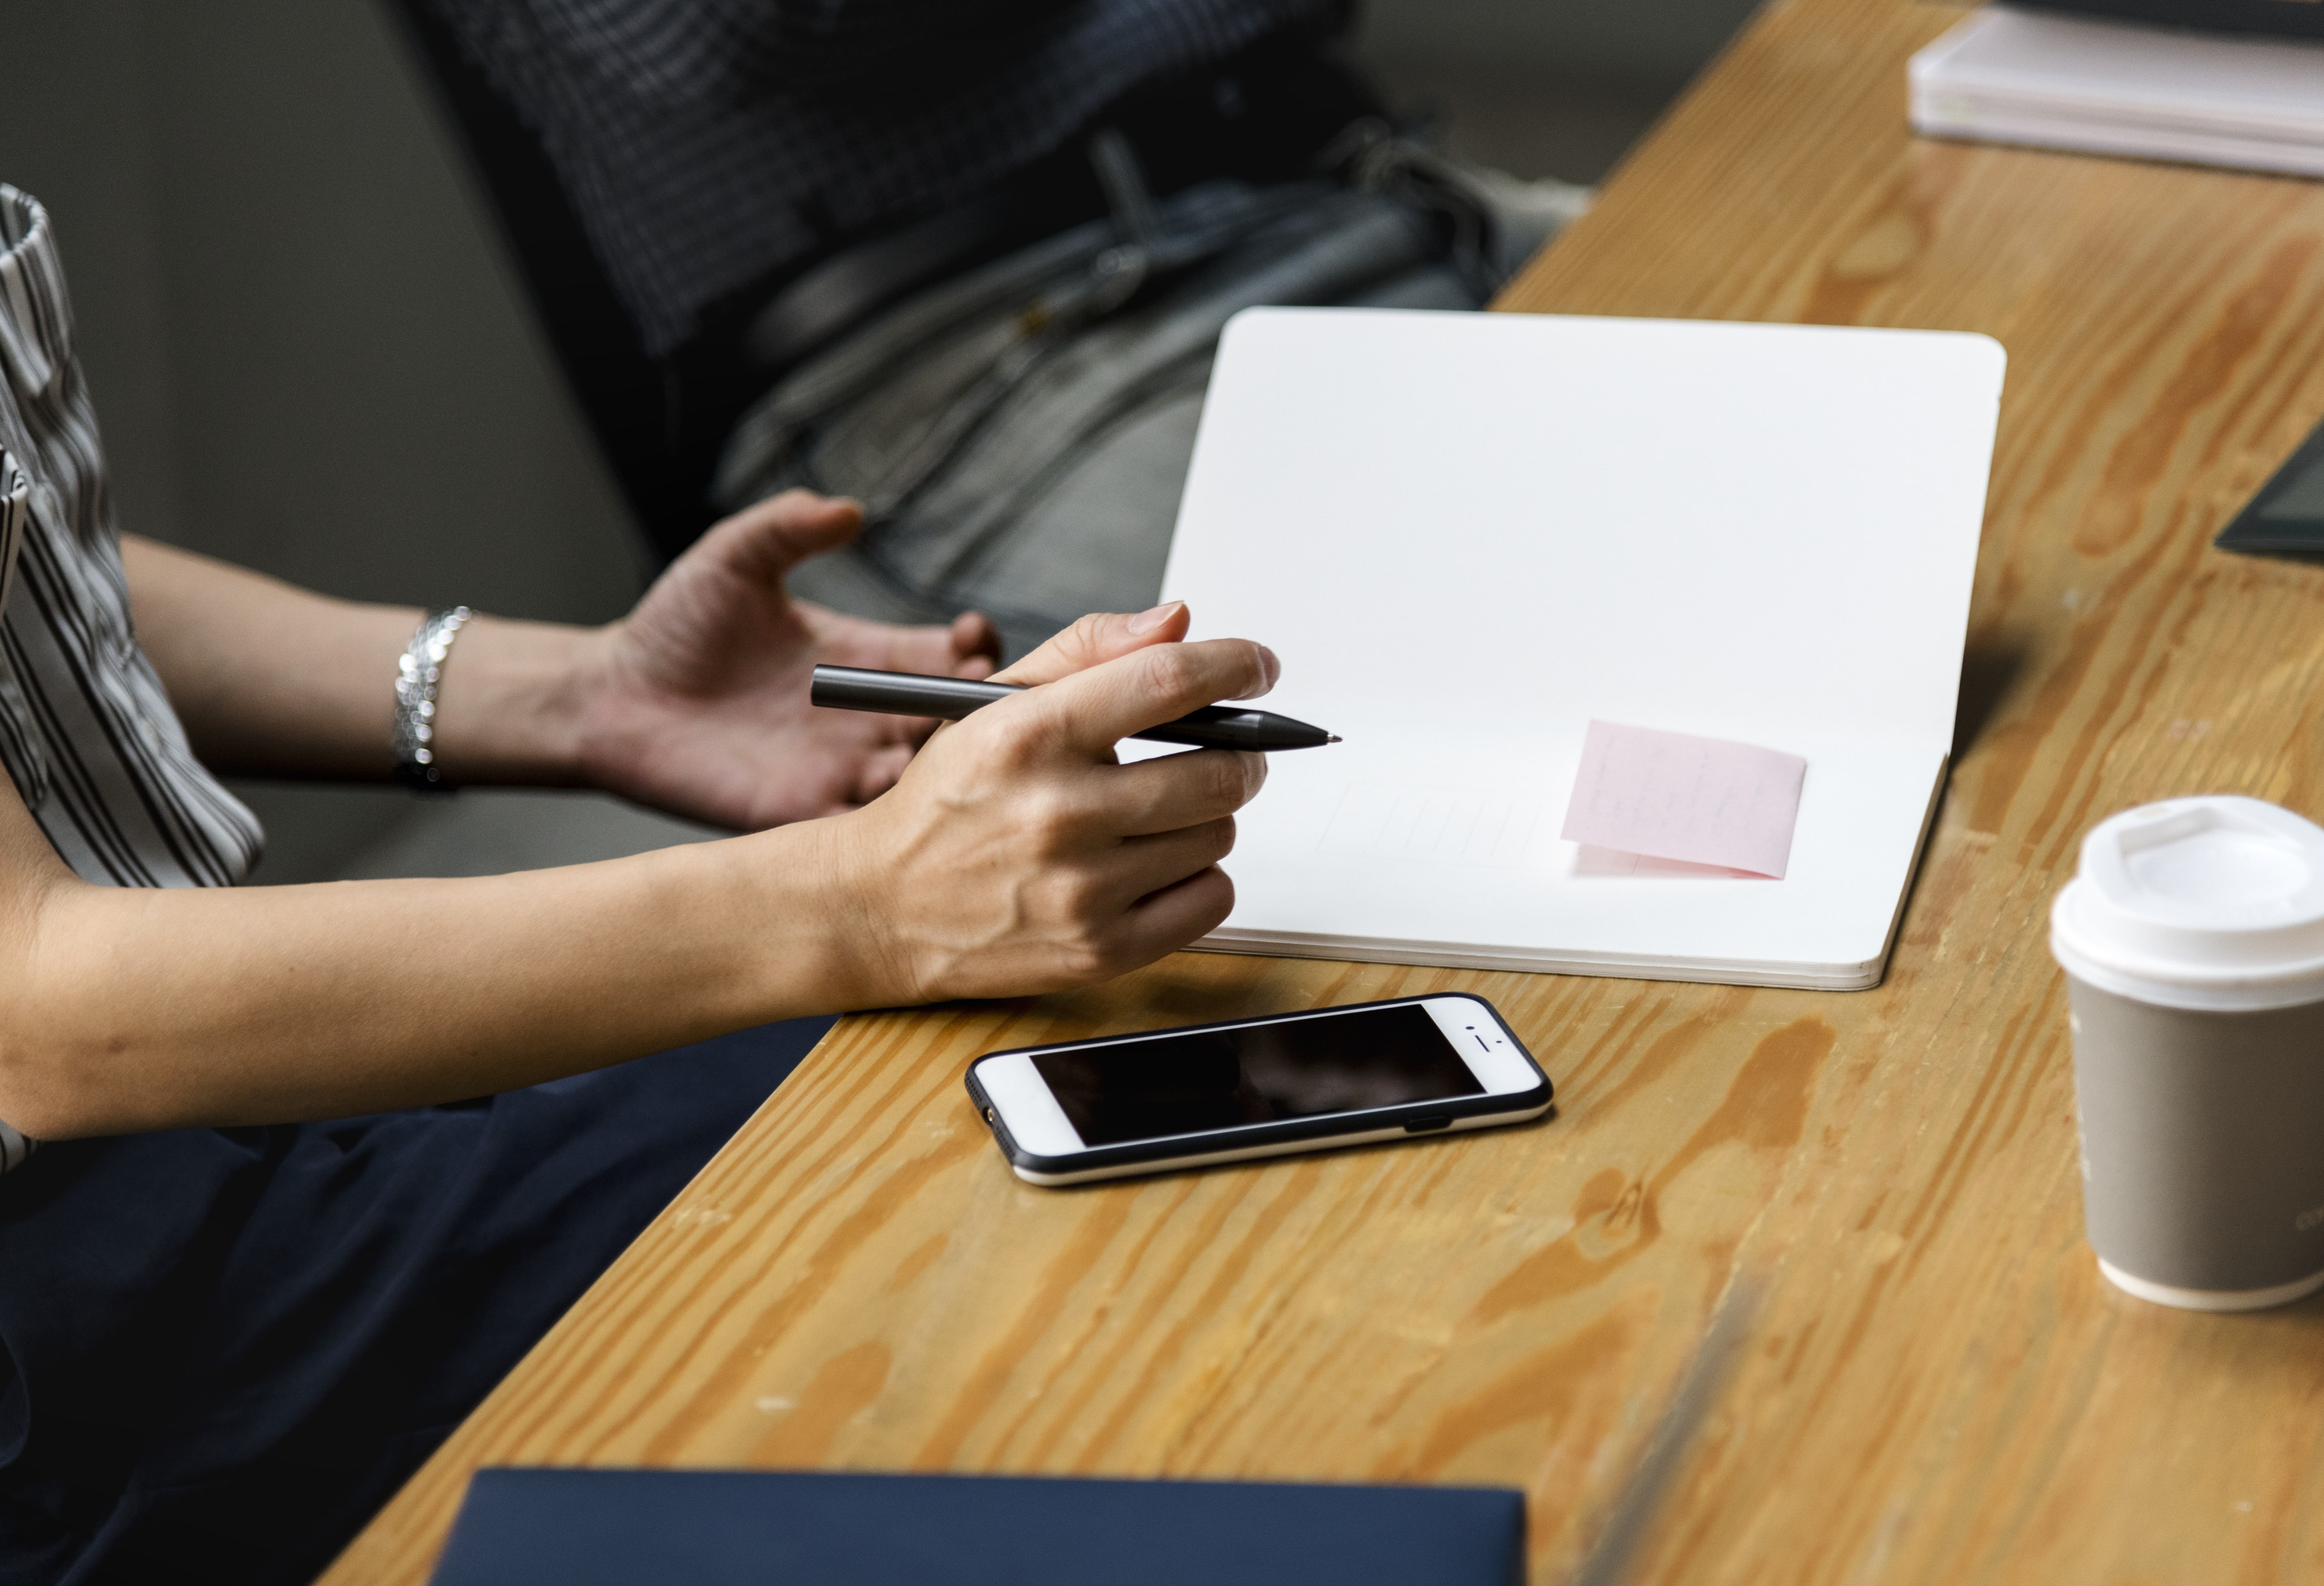 person holding pen on table with notebook and iPhone